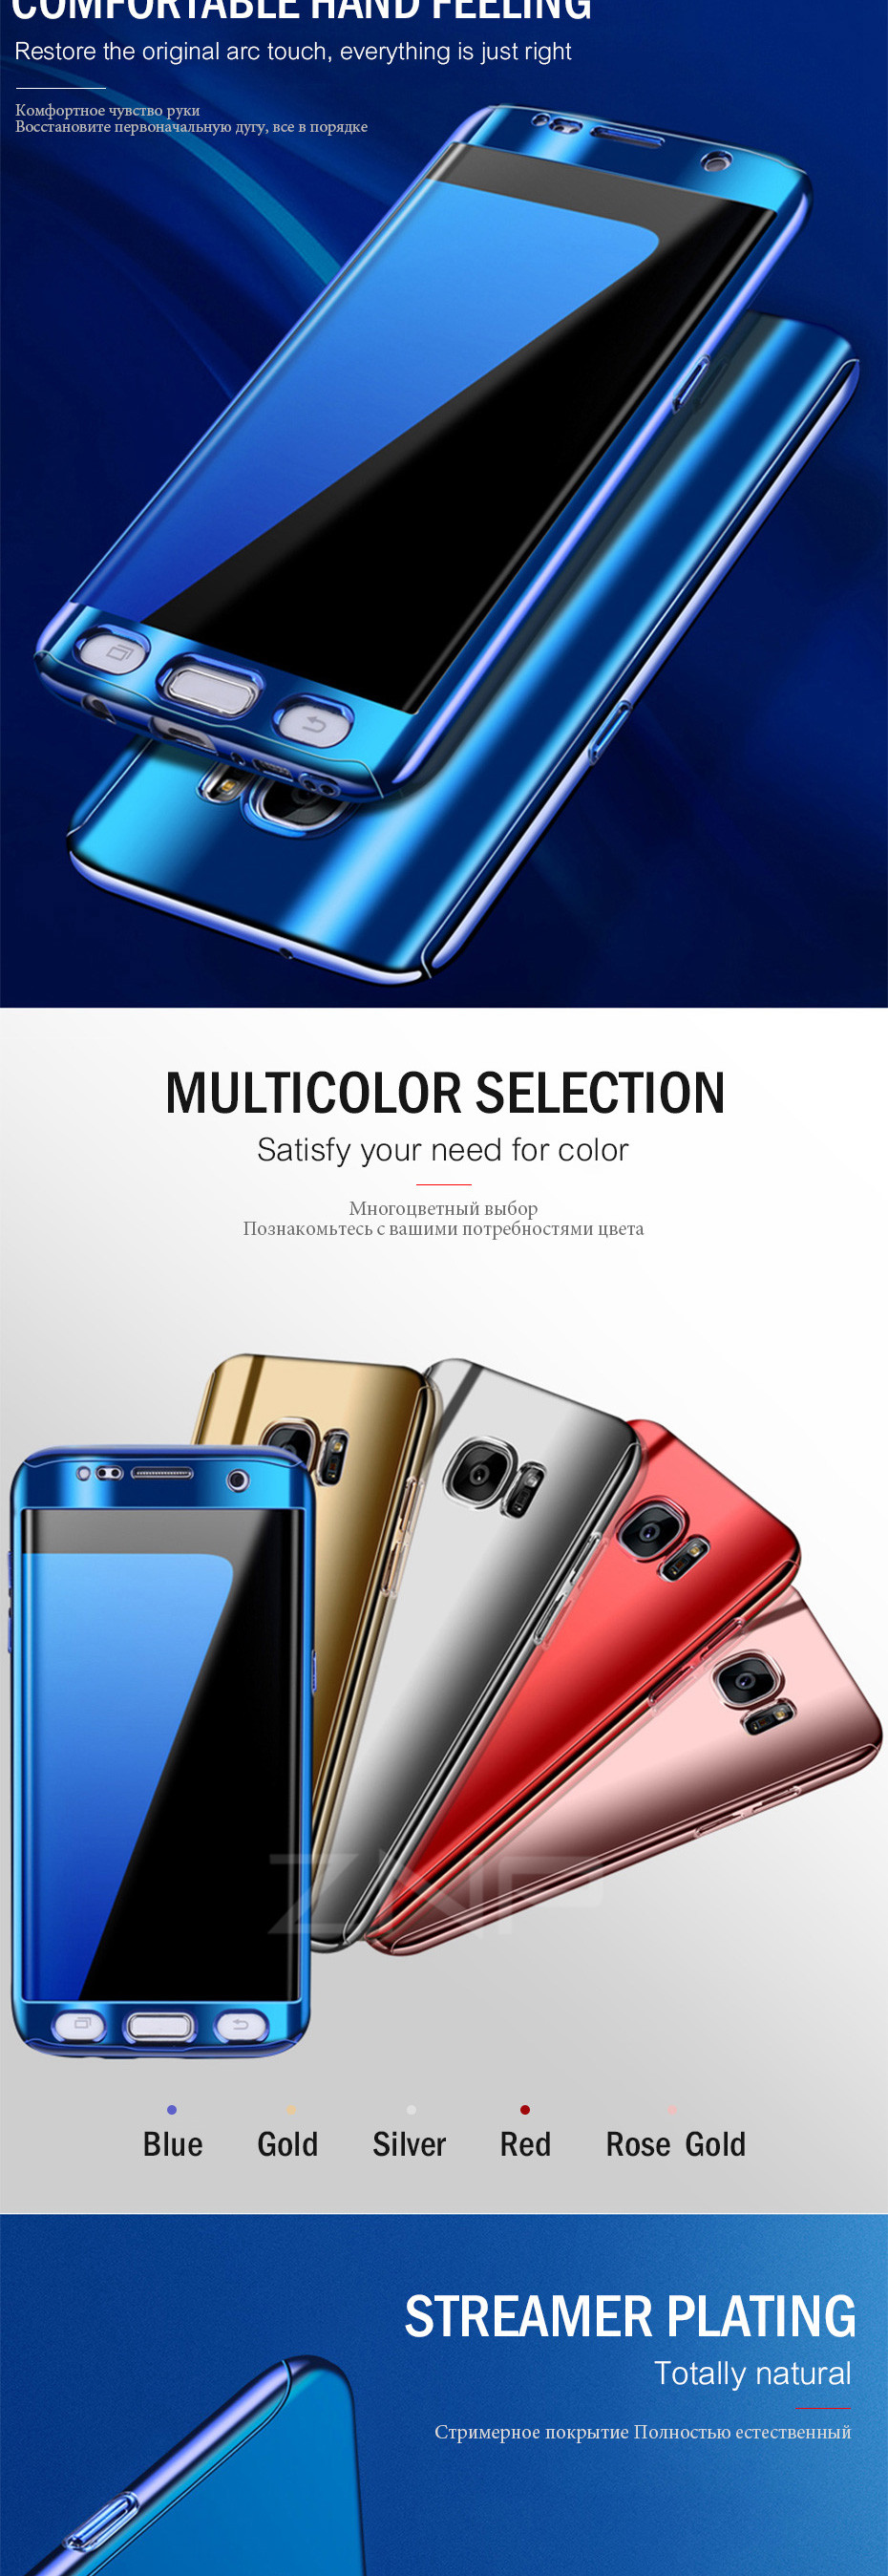 ZNP Luxury 360 Full Phone Case For Samsung Galaxy S9 S8 Plus Note 8 Bling Mirror Cover Cases For Samsung S7 Edge S9 S8 S7 Case 2